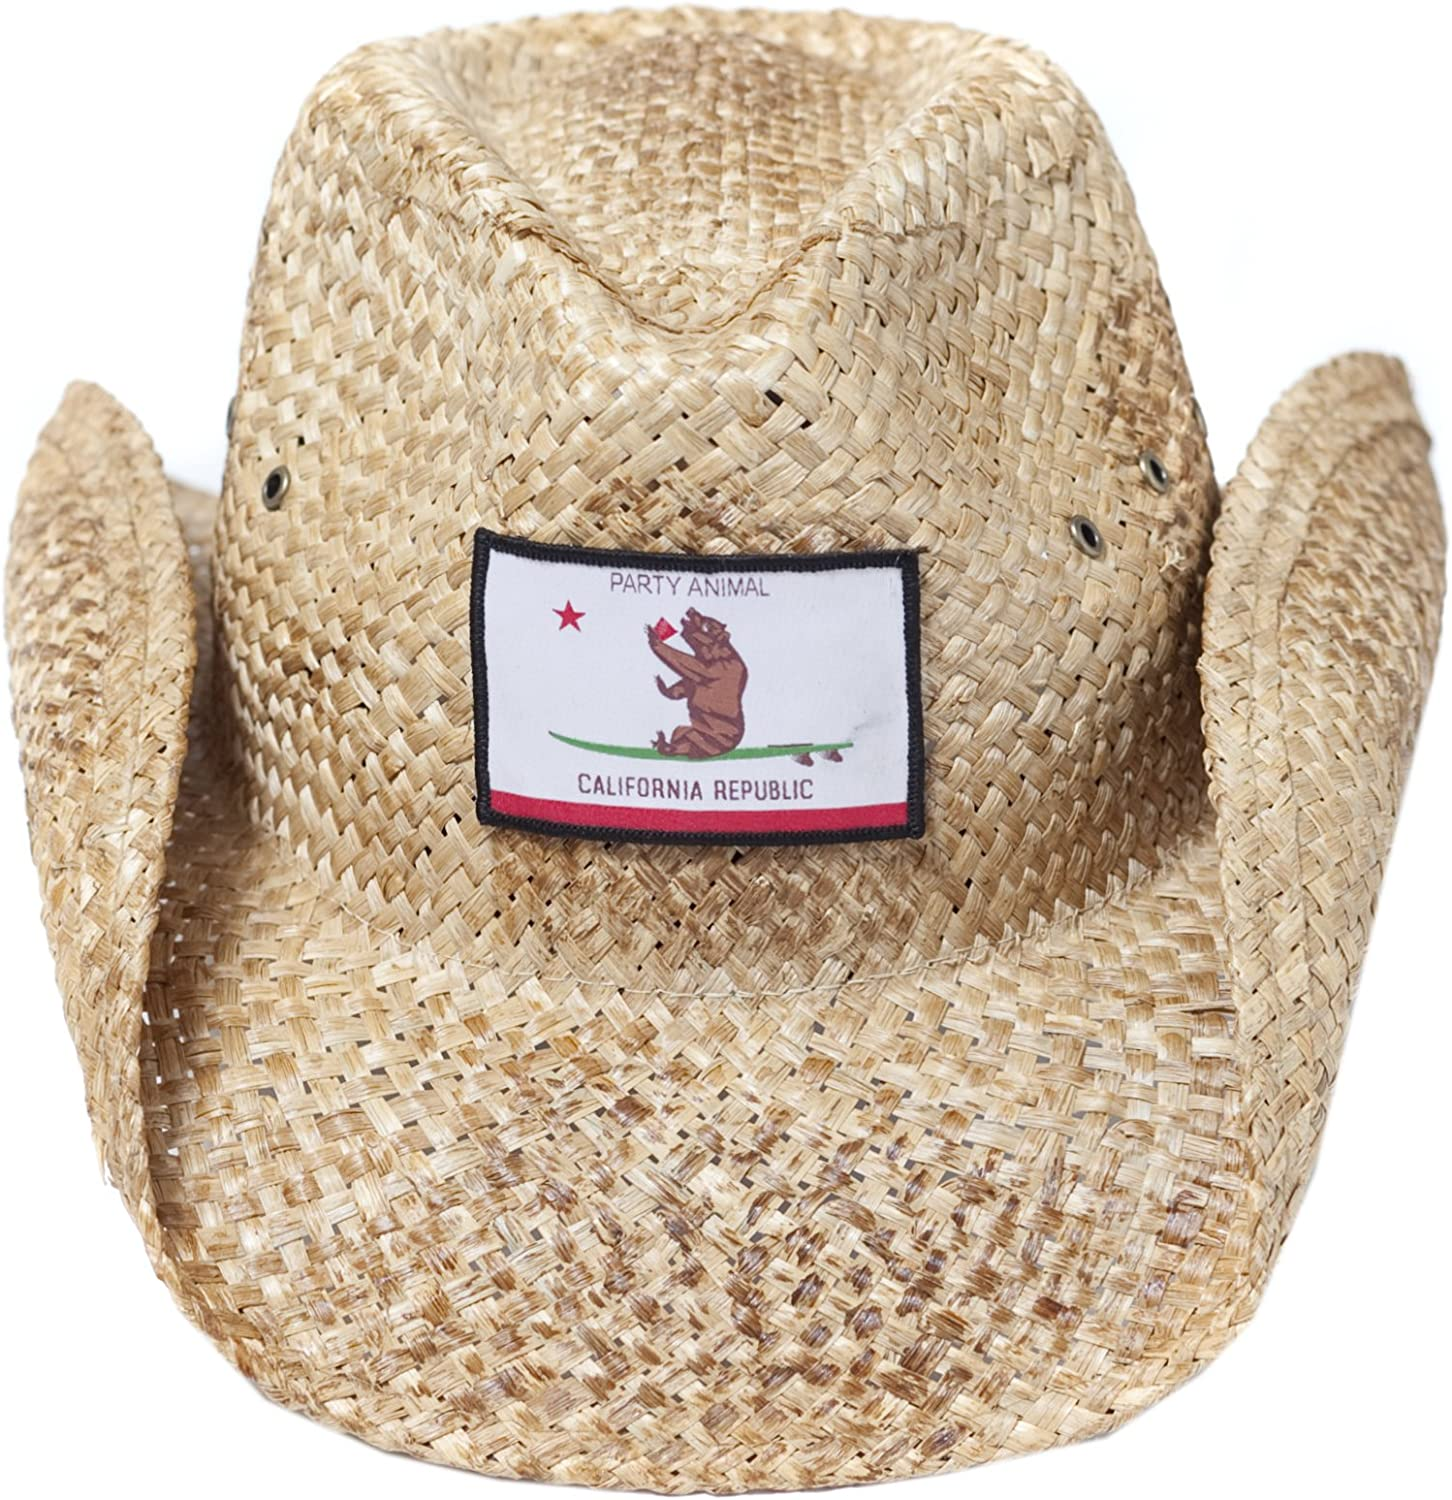 Peter Grimm Party Animal Straw Cowboy Hat for Men with California Republic Bear